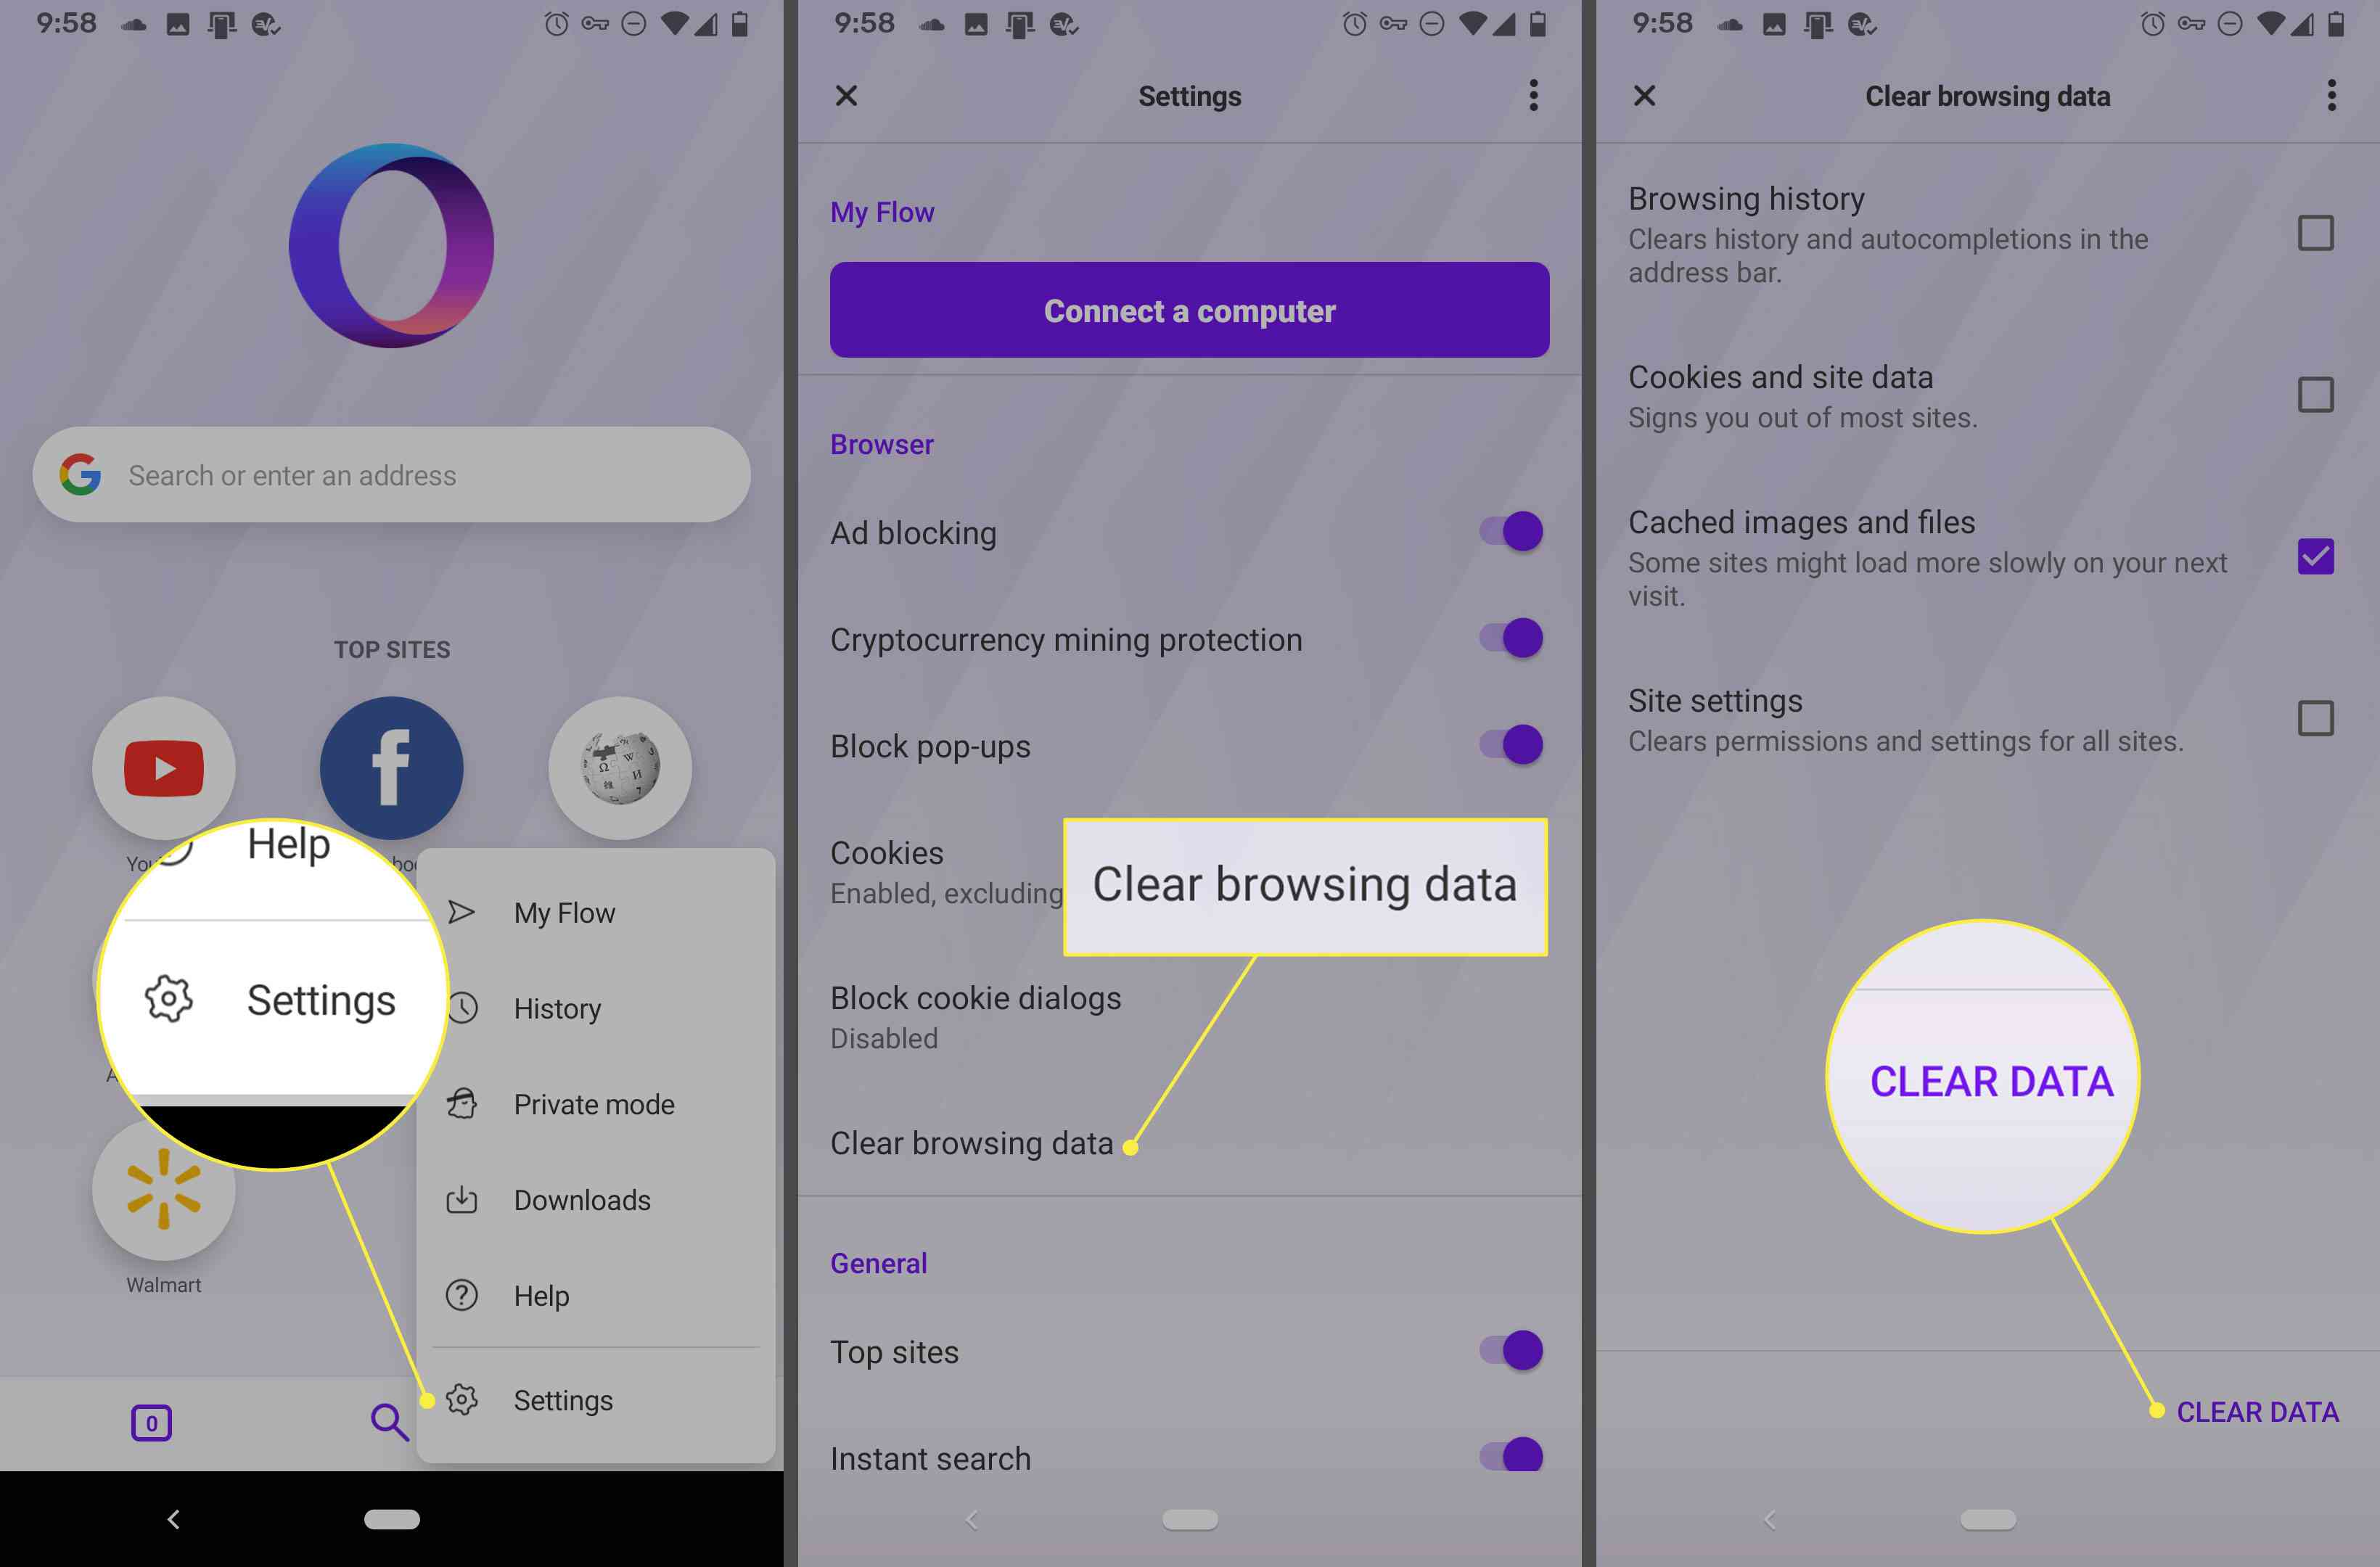 Screenshots of Opera on an Android phone showing how to delete the browsing data